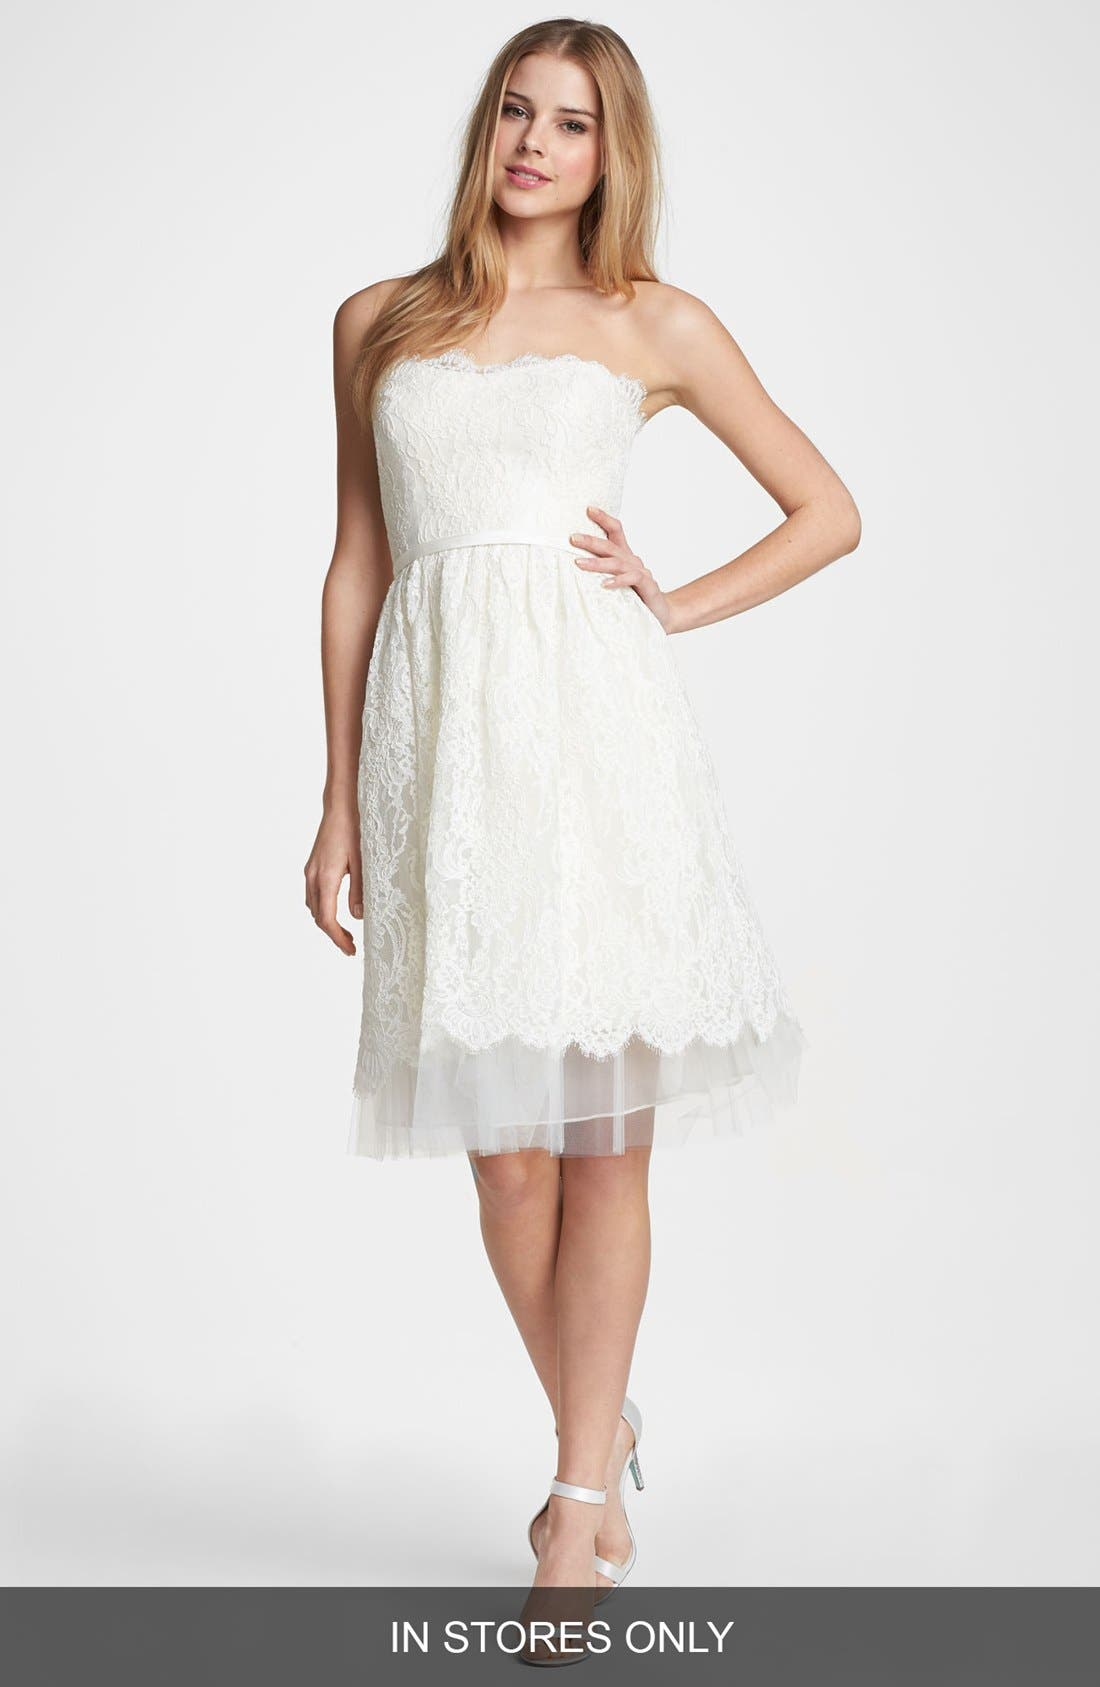 Alternate Image 1 Selected - Jenny Yoo 'Libby' Lace Fit & Flare Dress (In Stores Only)